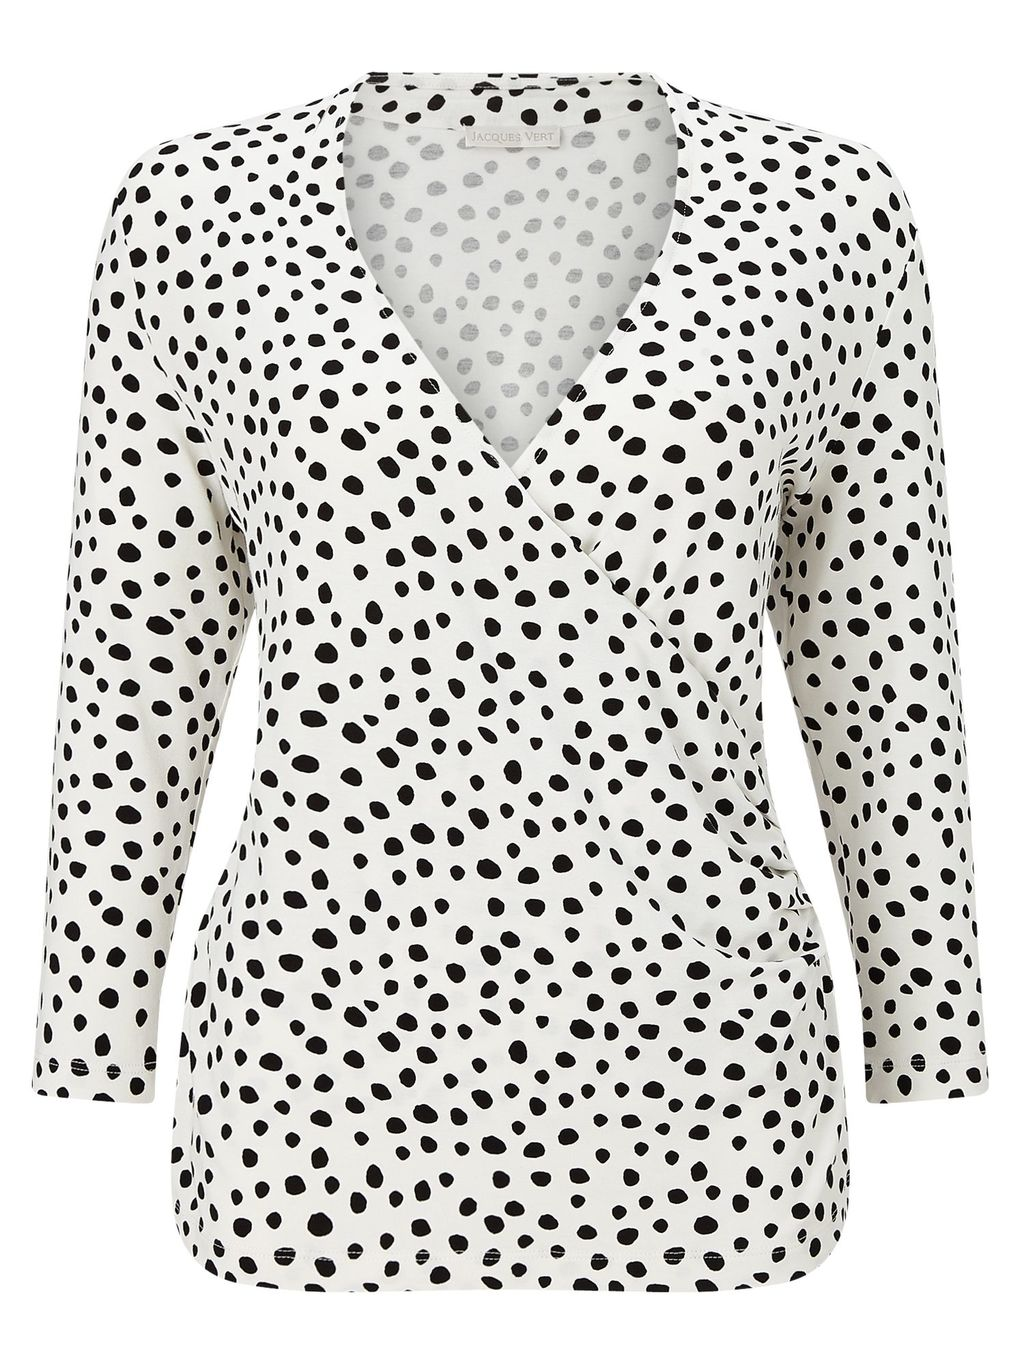 Polka Dot Jersey Top, Multi Coloured - neckline: v-neck; pattern: polka dot; predominant colour: white; occasions: work; length: standard; style: top; fibres: viscose/rayon - stretch; fit: body skimming; sleeve length: 3/4 length; sleeve style: standard; pattern type: fabric; texture group: other - light to midweight; pattern size: big & busy (top); season: s/s 2016; wardrobe: highlight